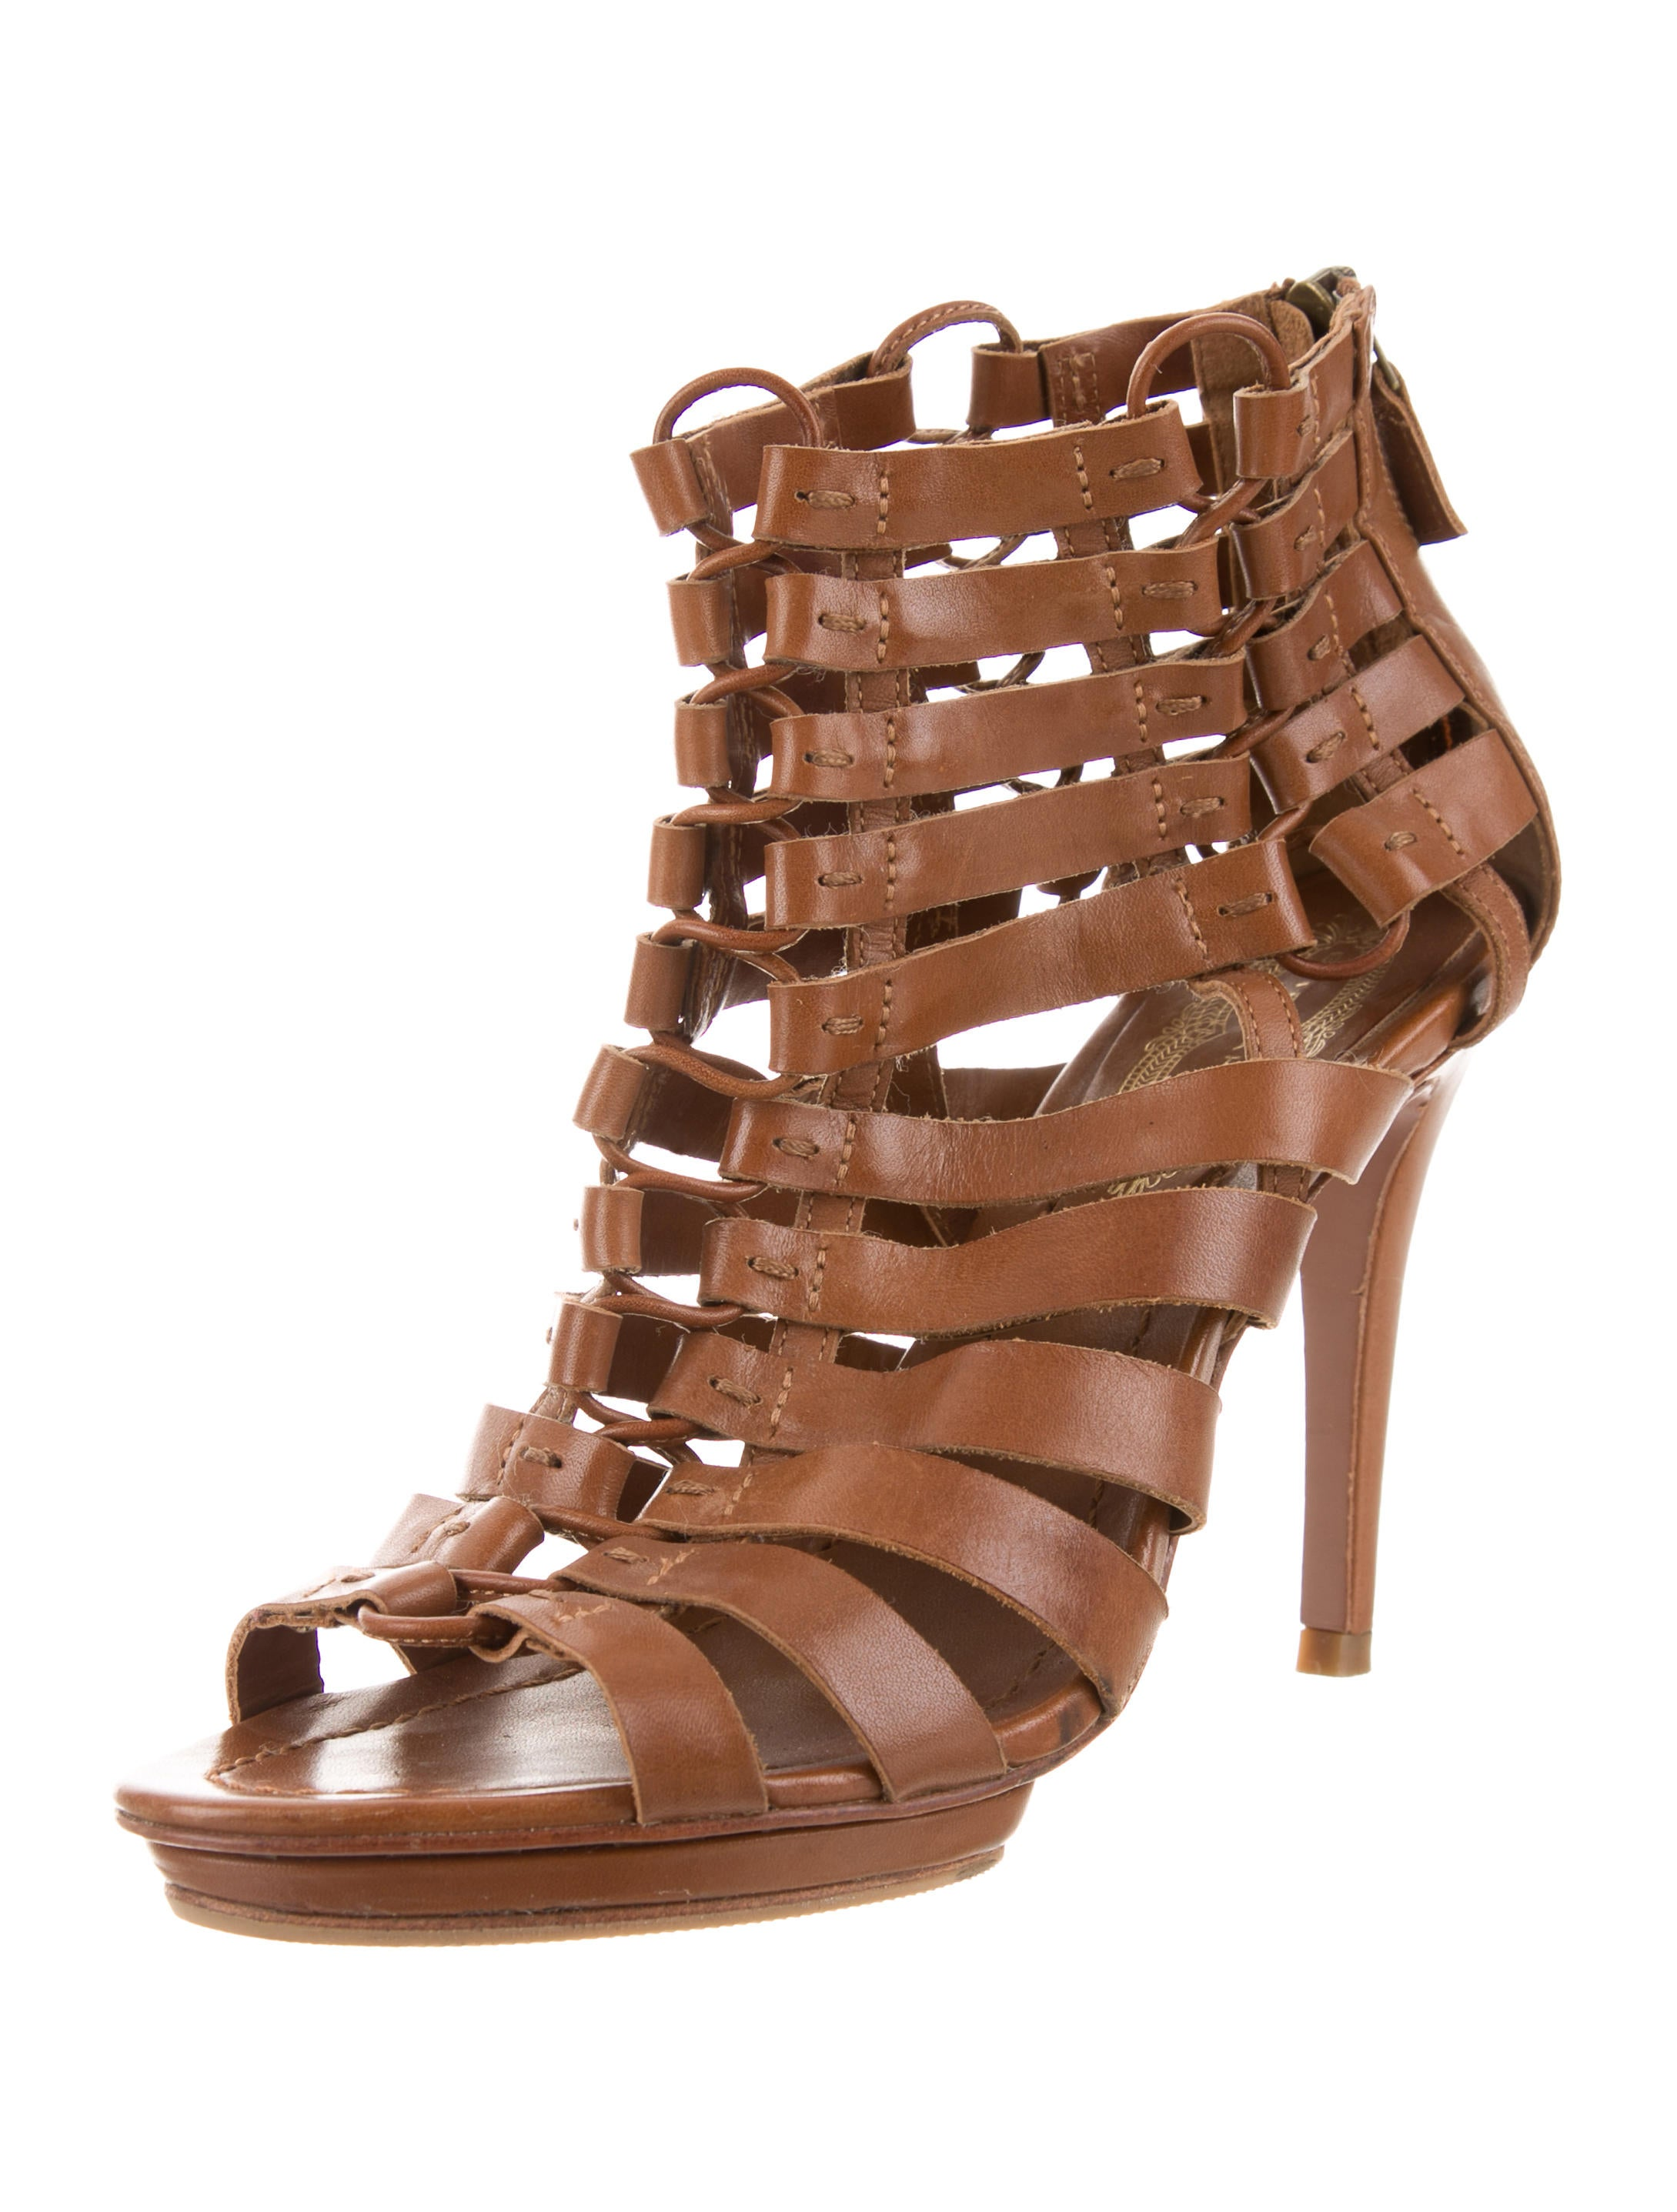 free shipping 2014 newest discount cheap online Elie Tahari Multistrap Leather Sandals gH4gj